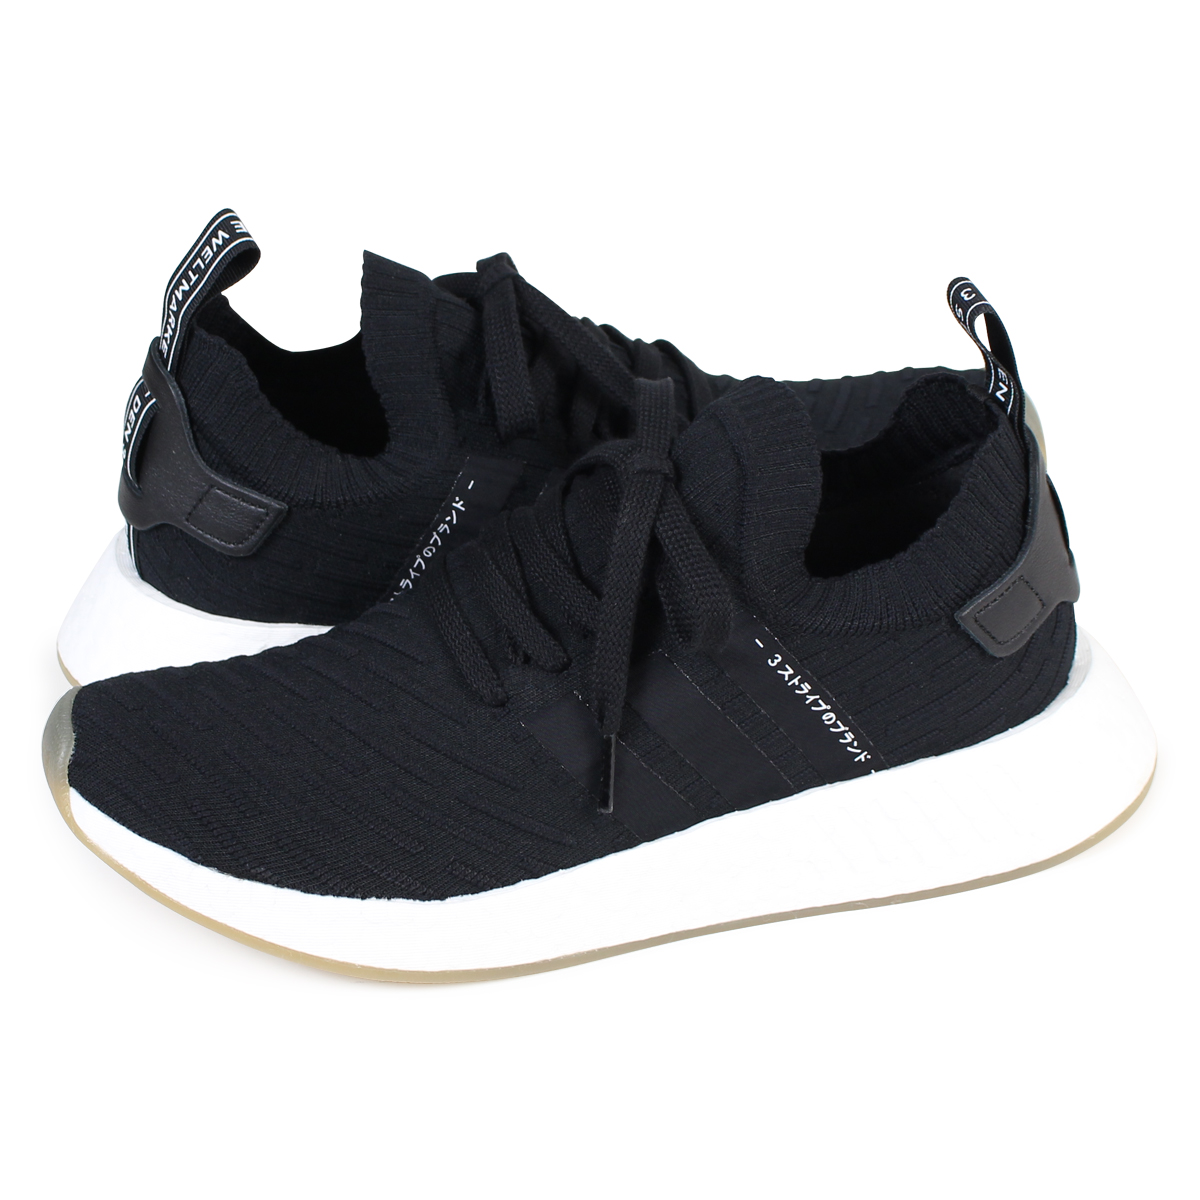 050fc4518 Whats up Sports  adidas originals NMD R1 PK Adidas sneakers nomad men  BY9696 shoes black  10 28 Shinnyu load